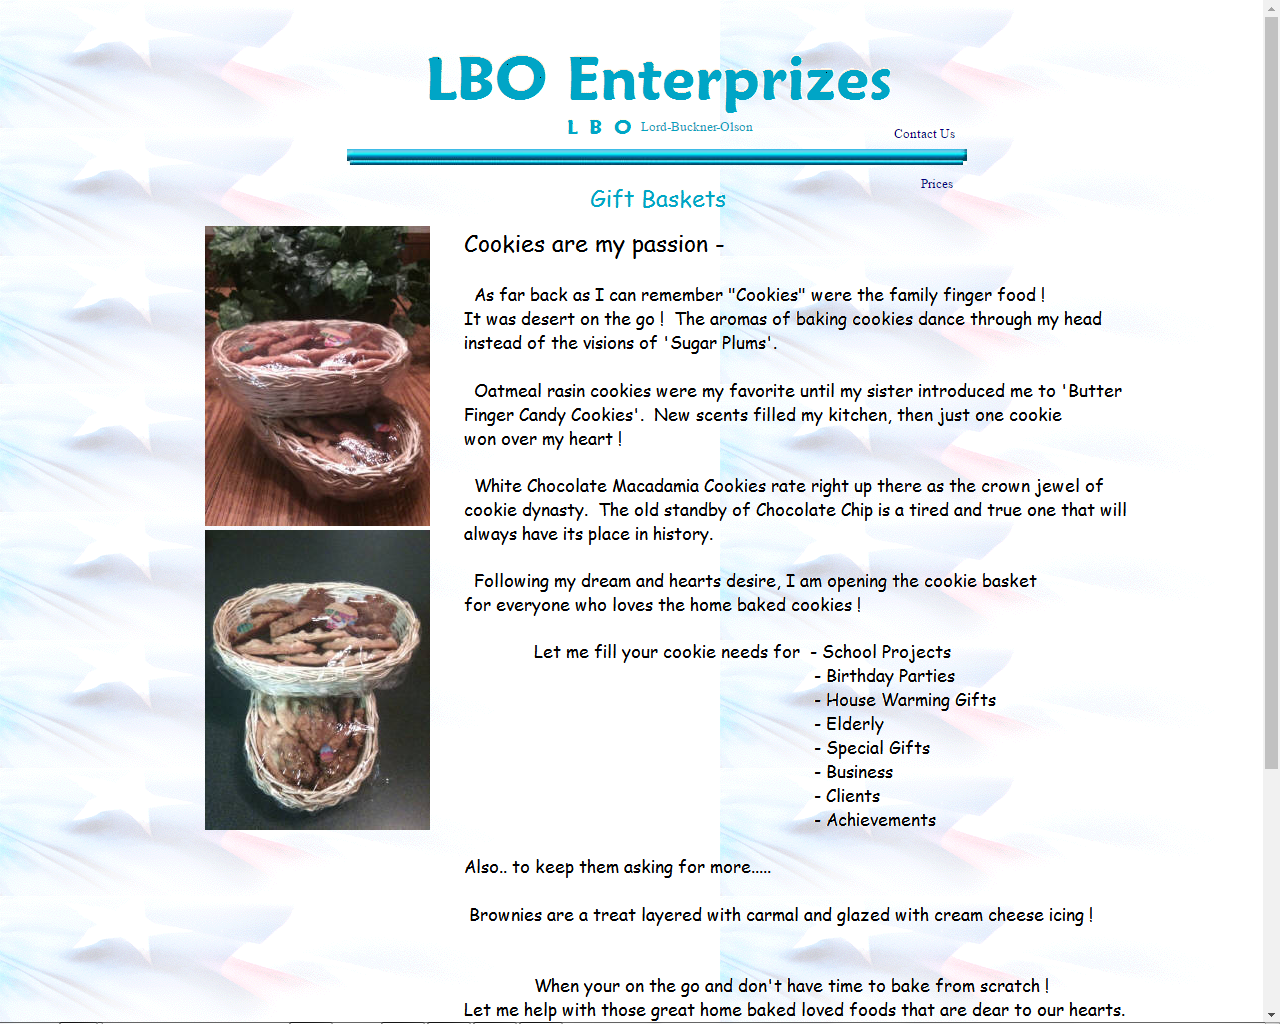 LBO Enterprizes